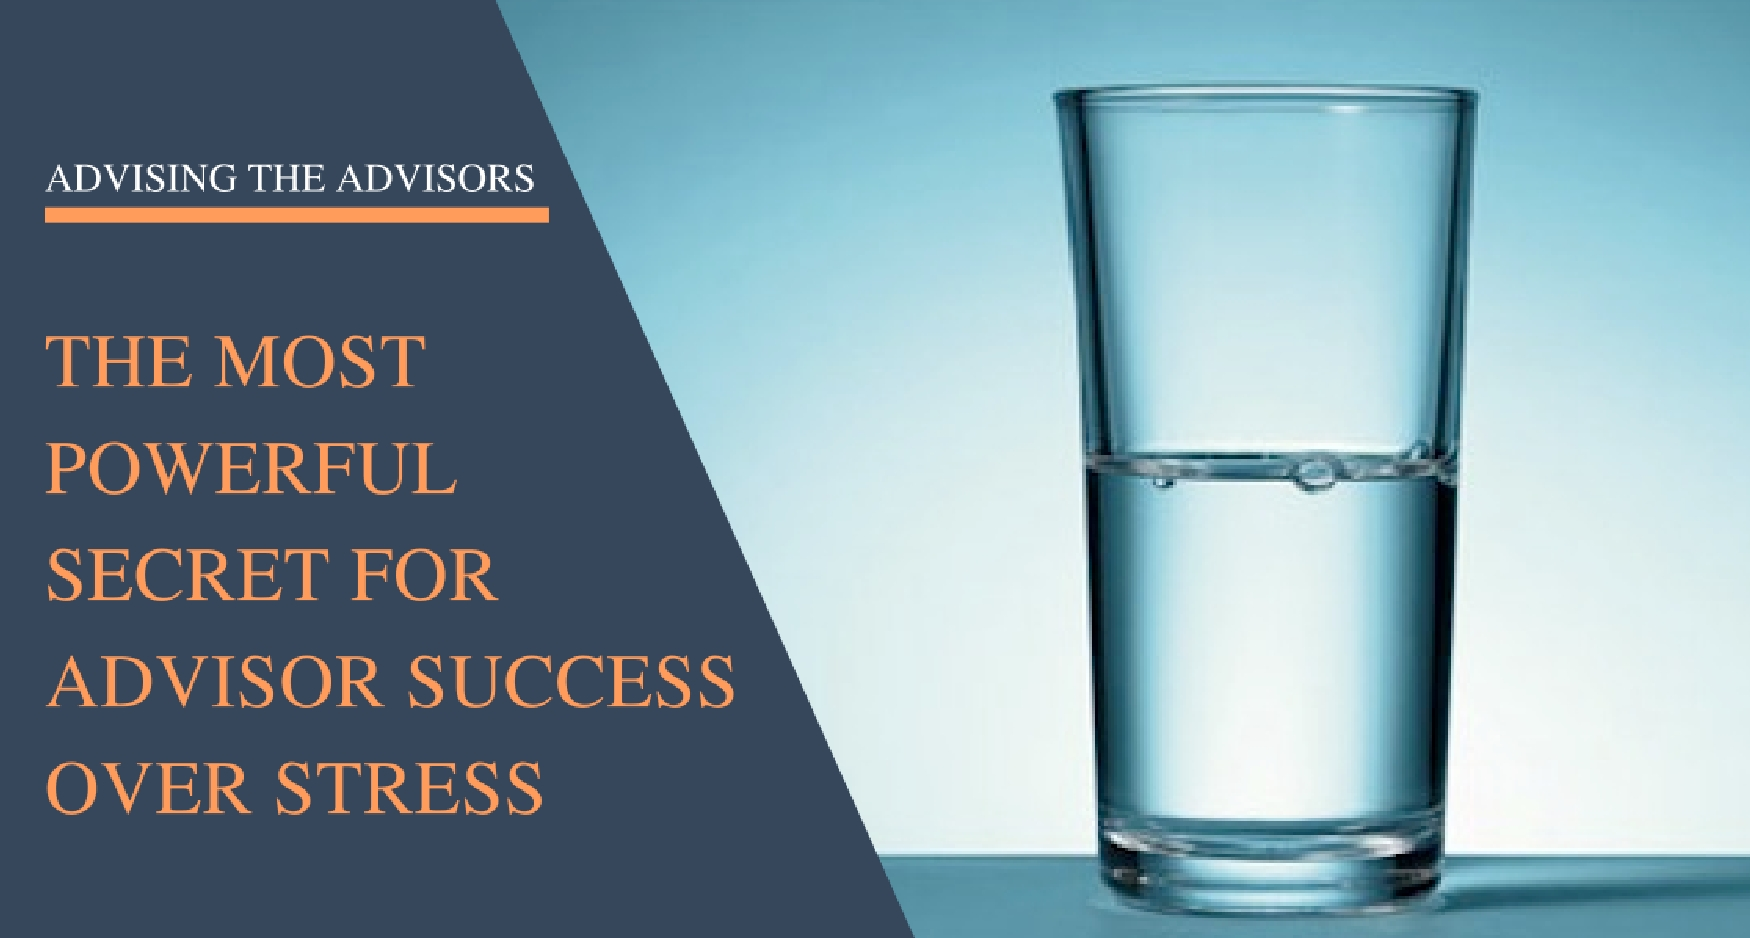 The Most Powerful Secret for Advisor Success Over Stress